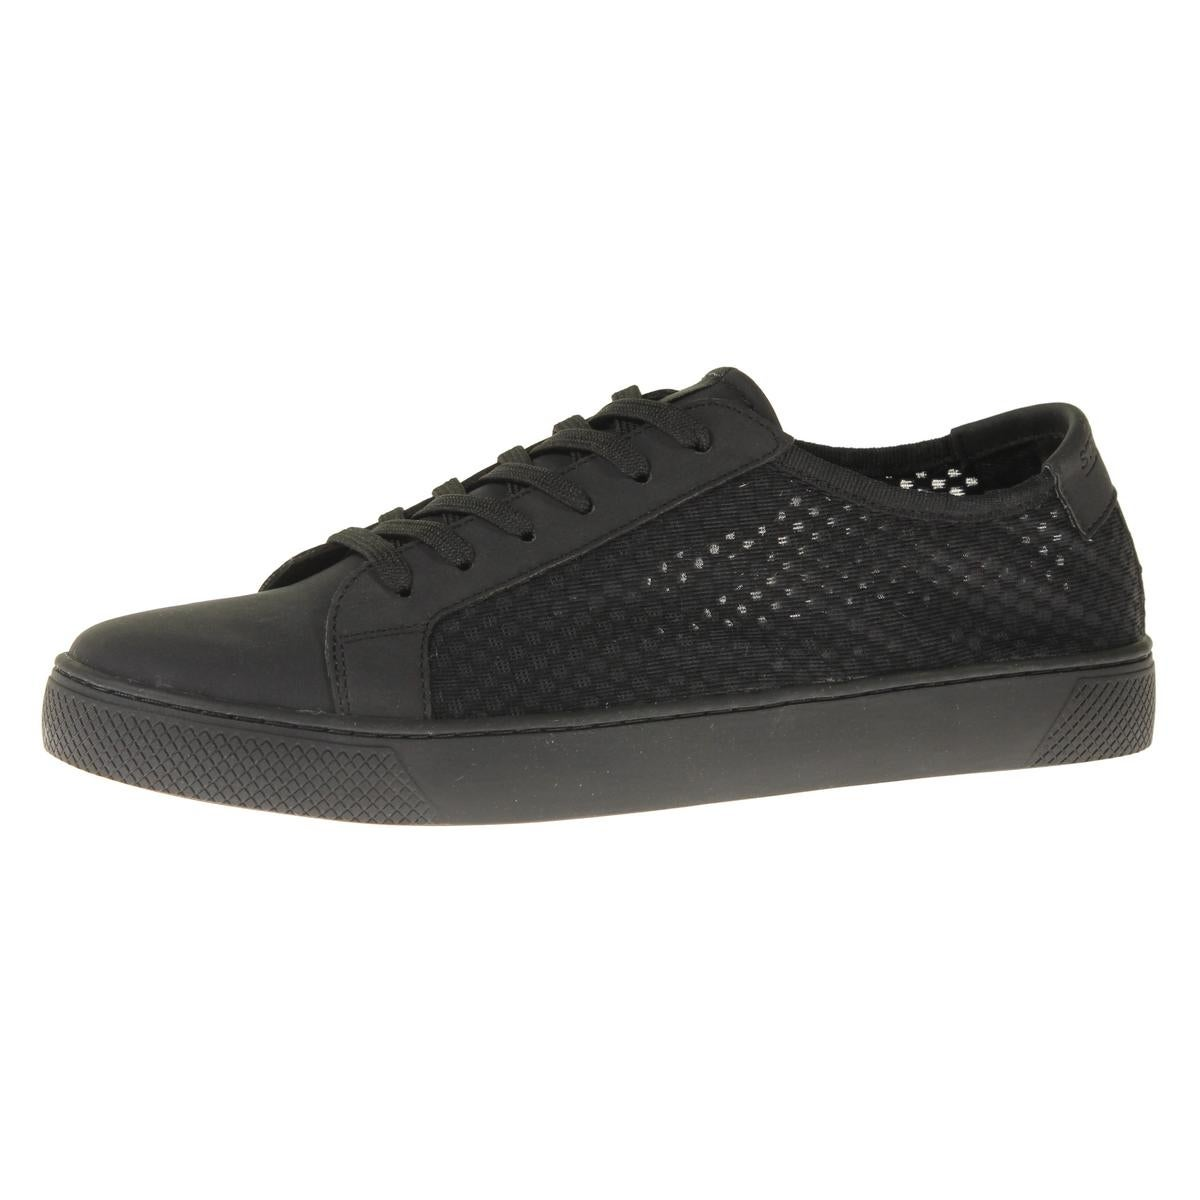 Steve Madden Mens Agave Fashion Sneakers Airy Mesh Casual (2 options  available)